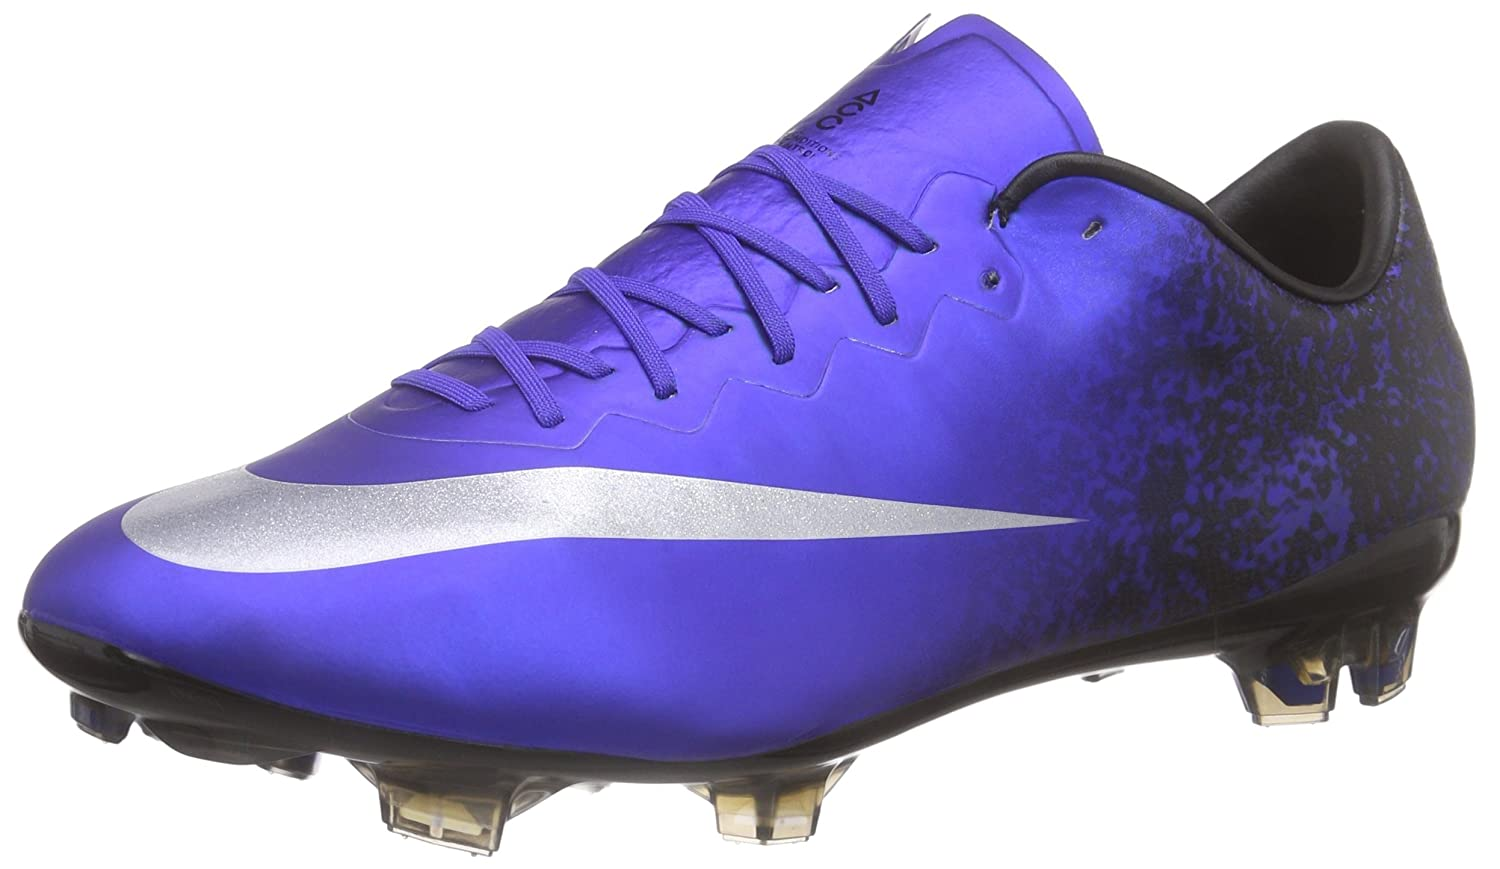 finest selection 16b9d 6cac3 Nike Mercurial Vapor X CR FG Soccer Cleats